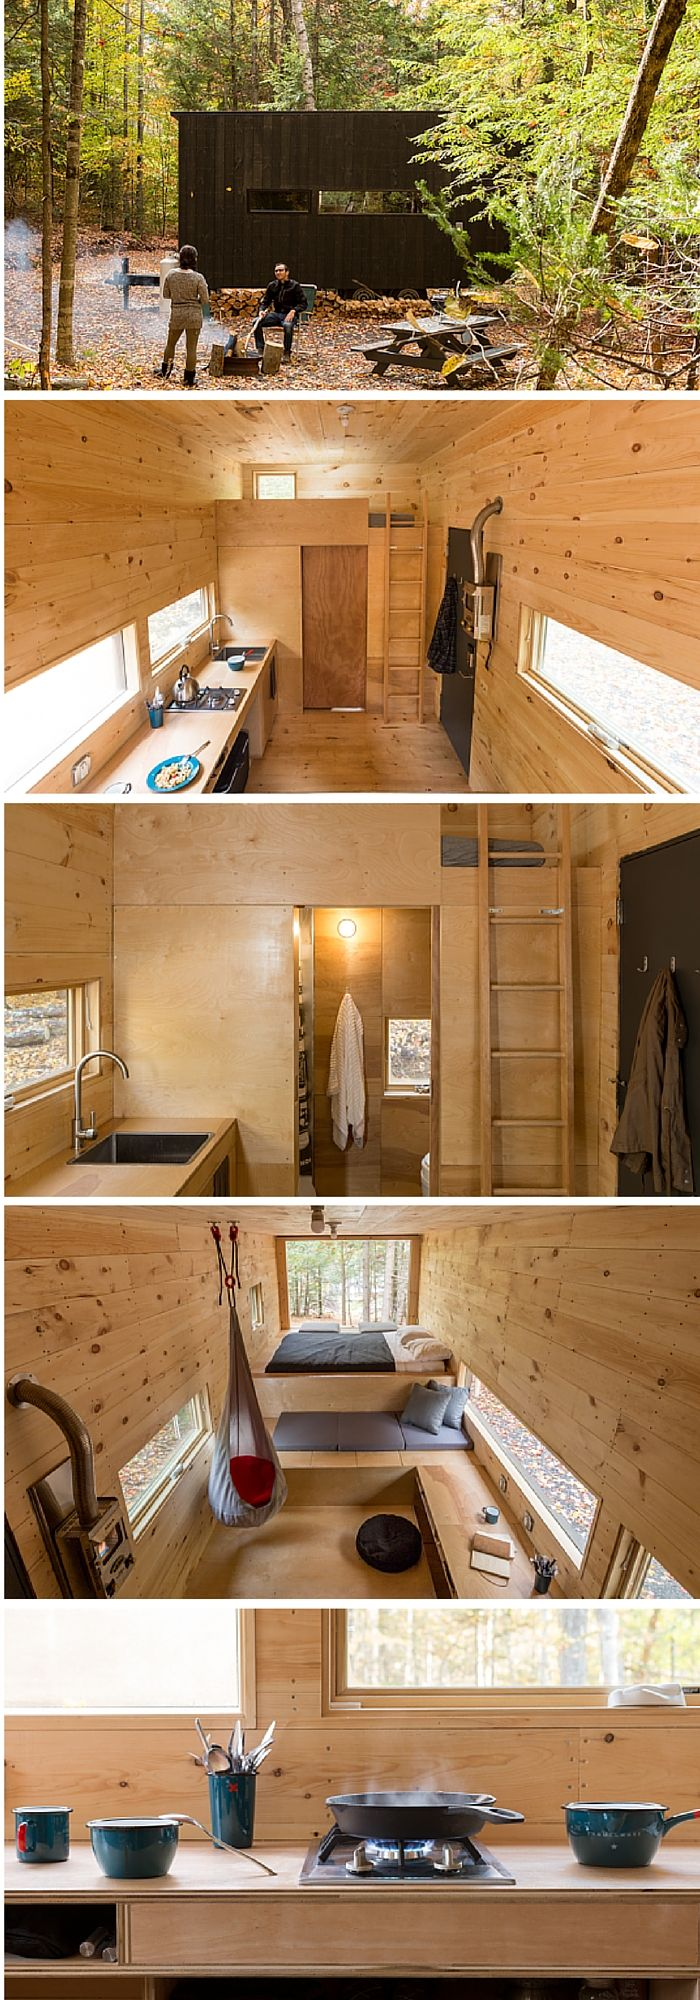 THE CLARA – 160 SQ FT TINY HOUSES ON WHEELS